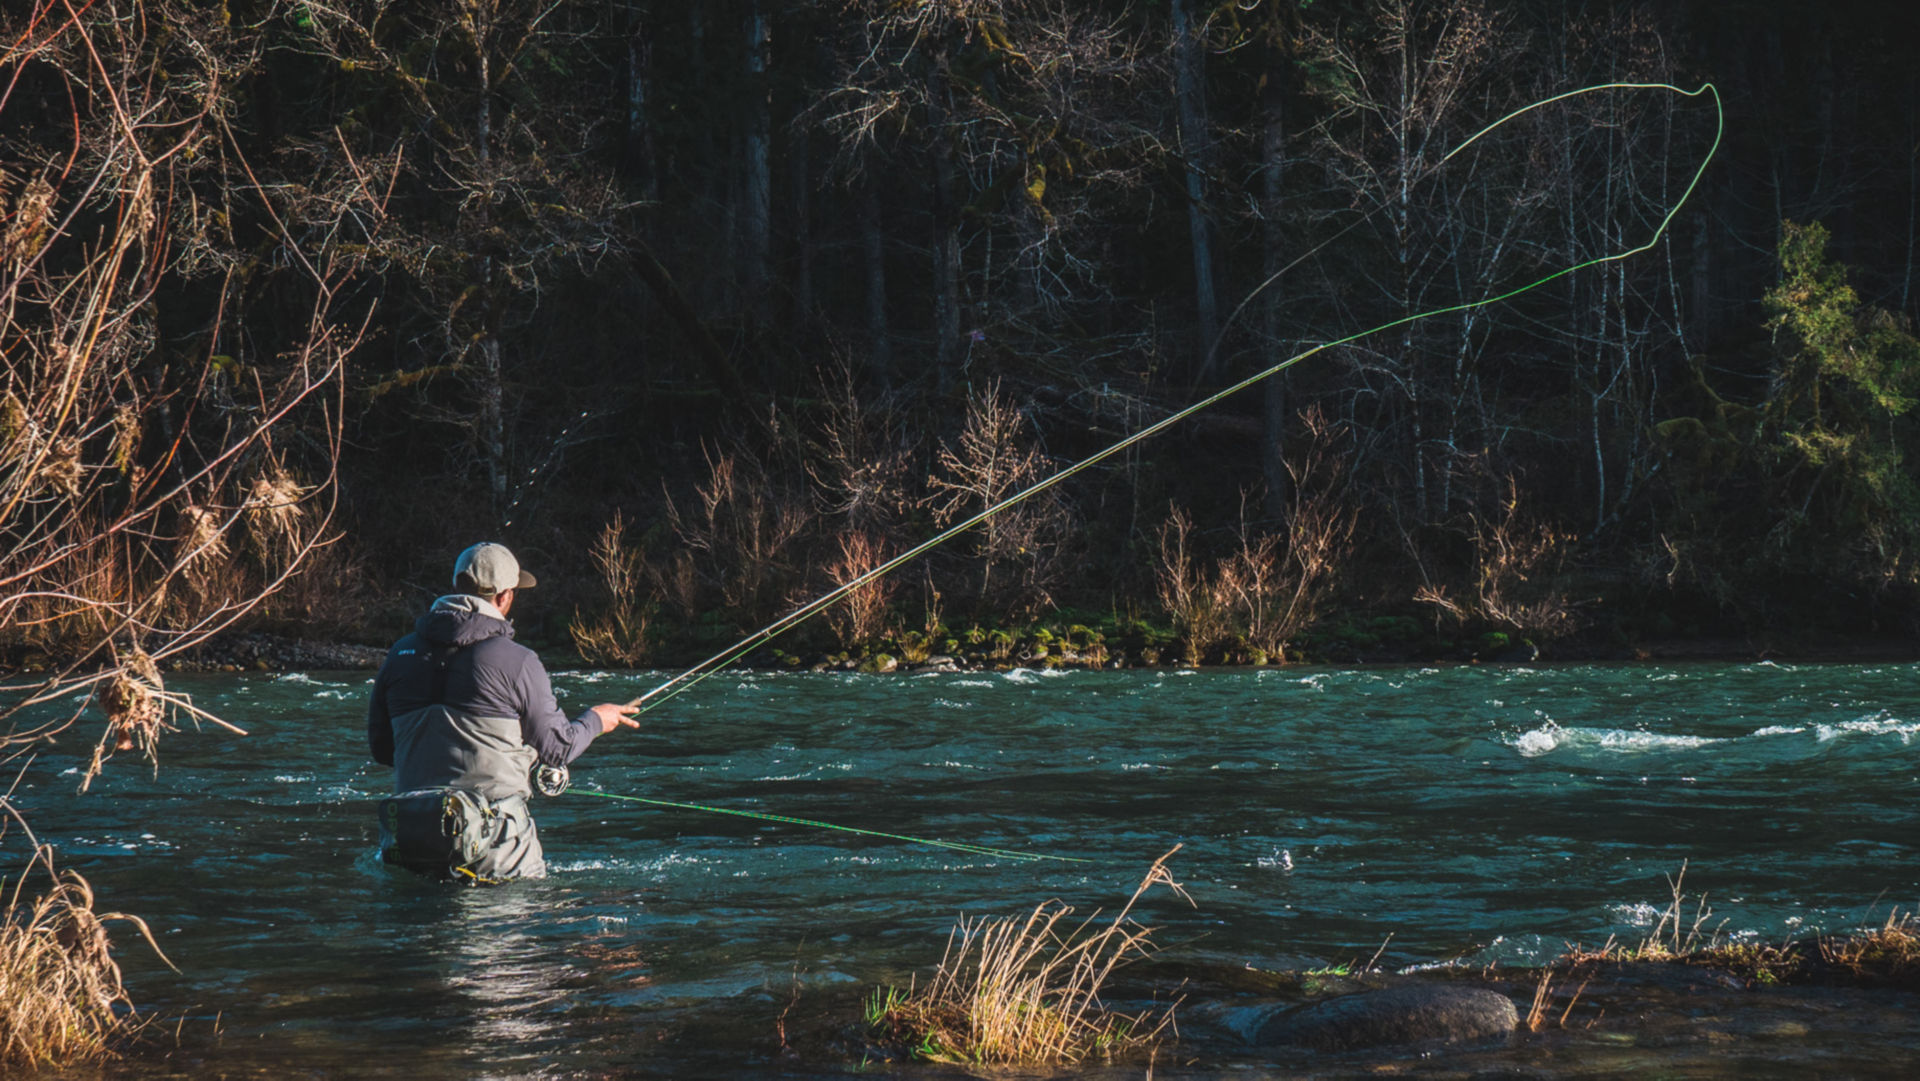 Pete Kutzer casting in the river.